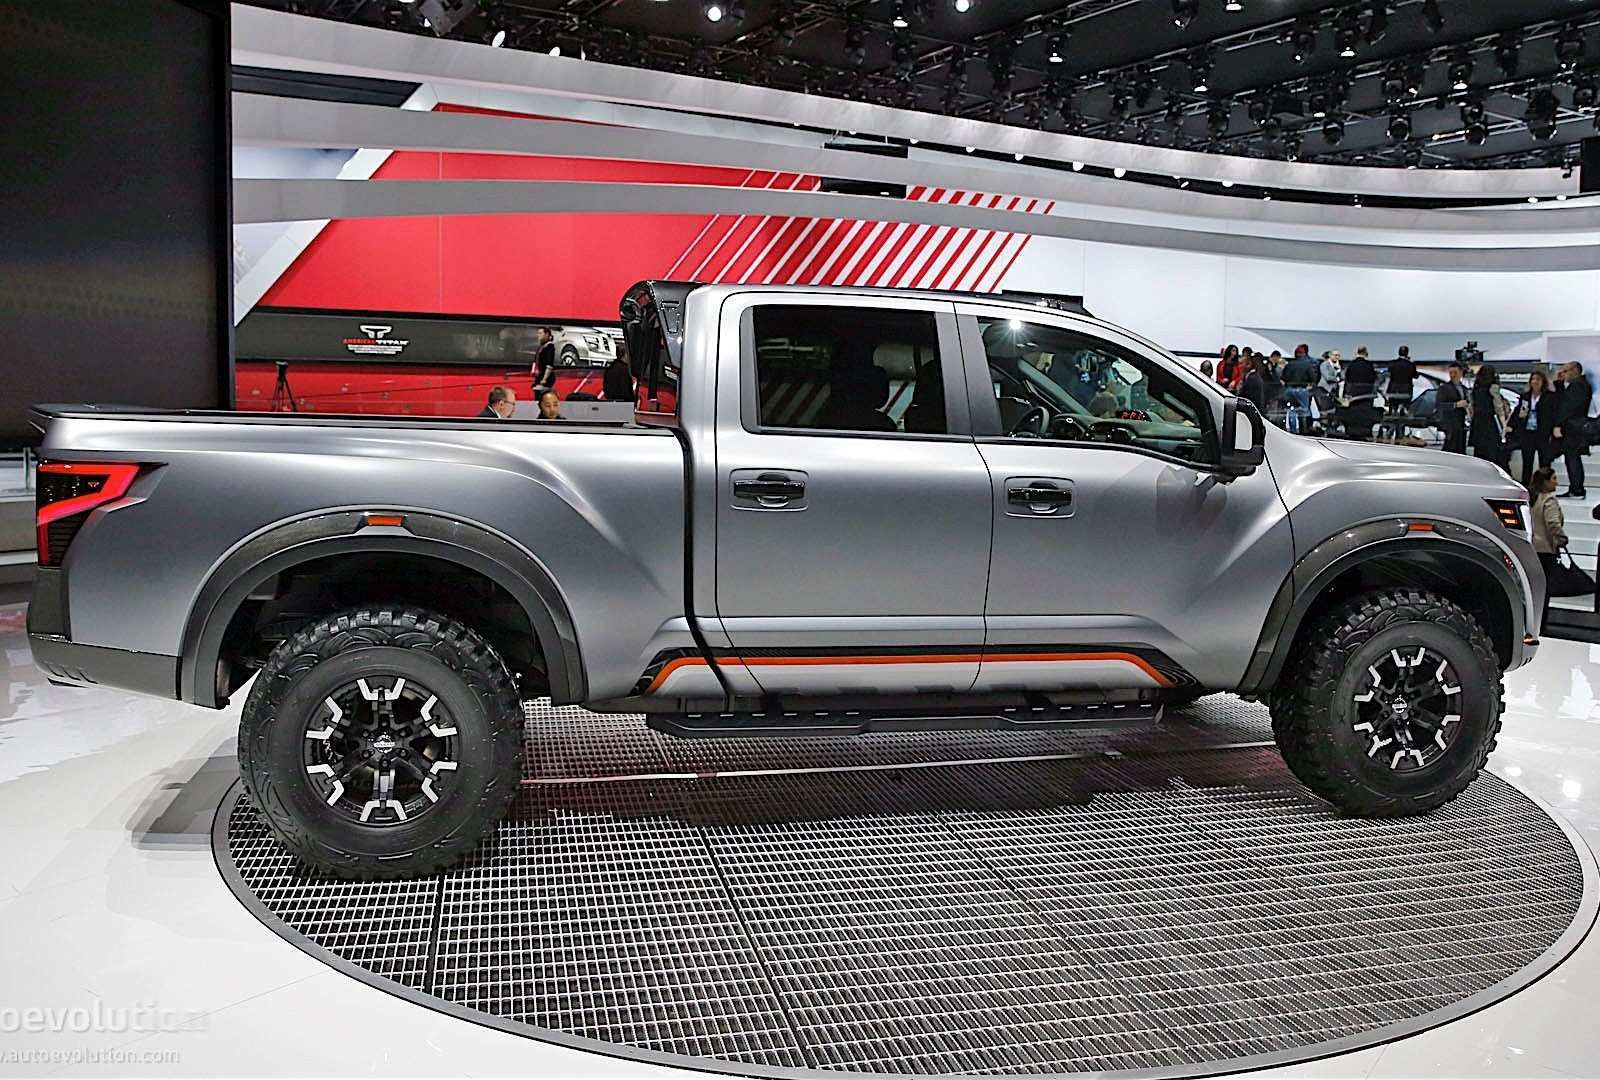 63 The Best Nissan Titan Xd 2020 Specs And Review